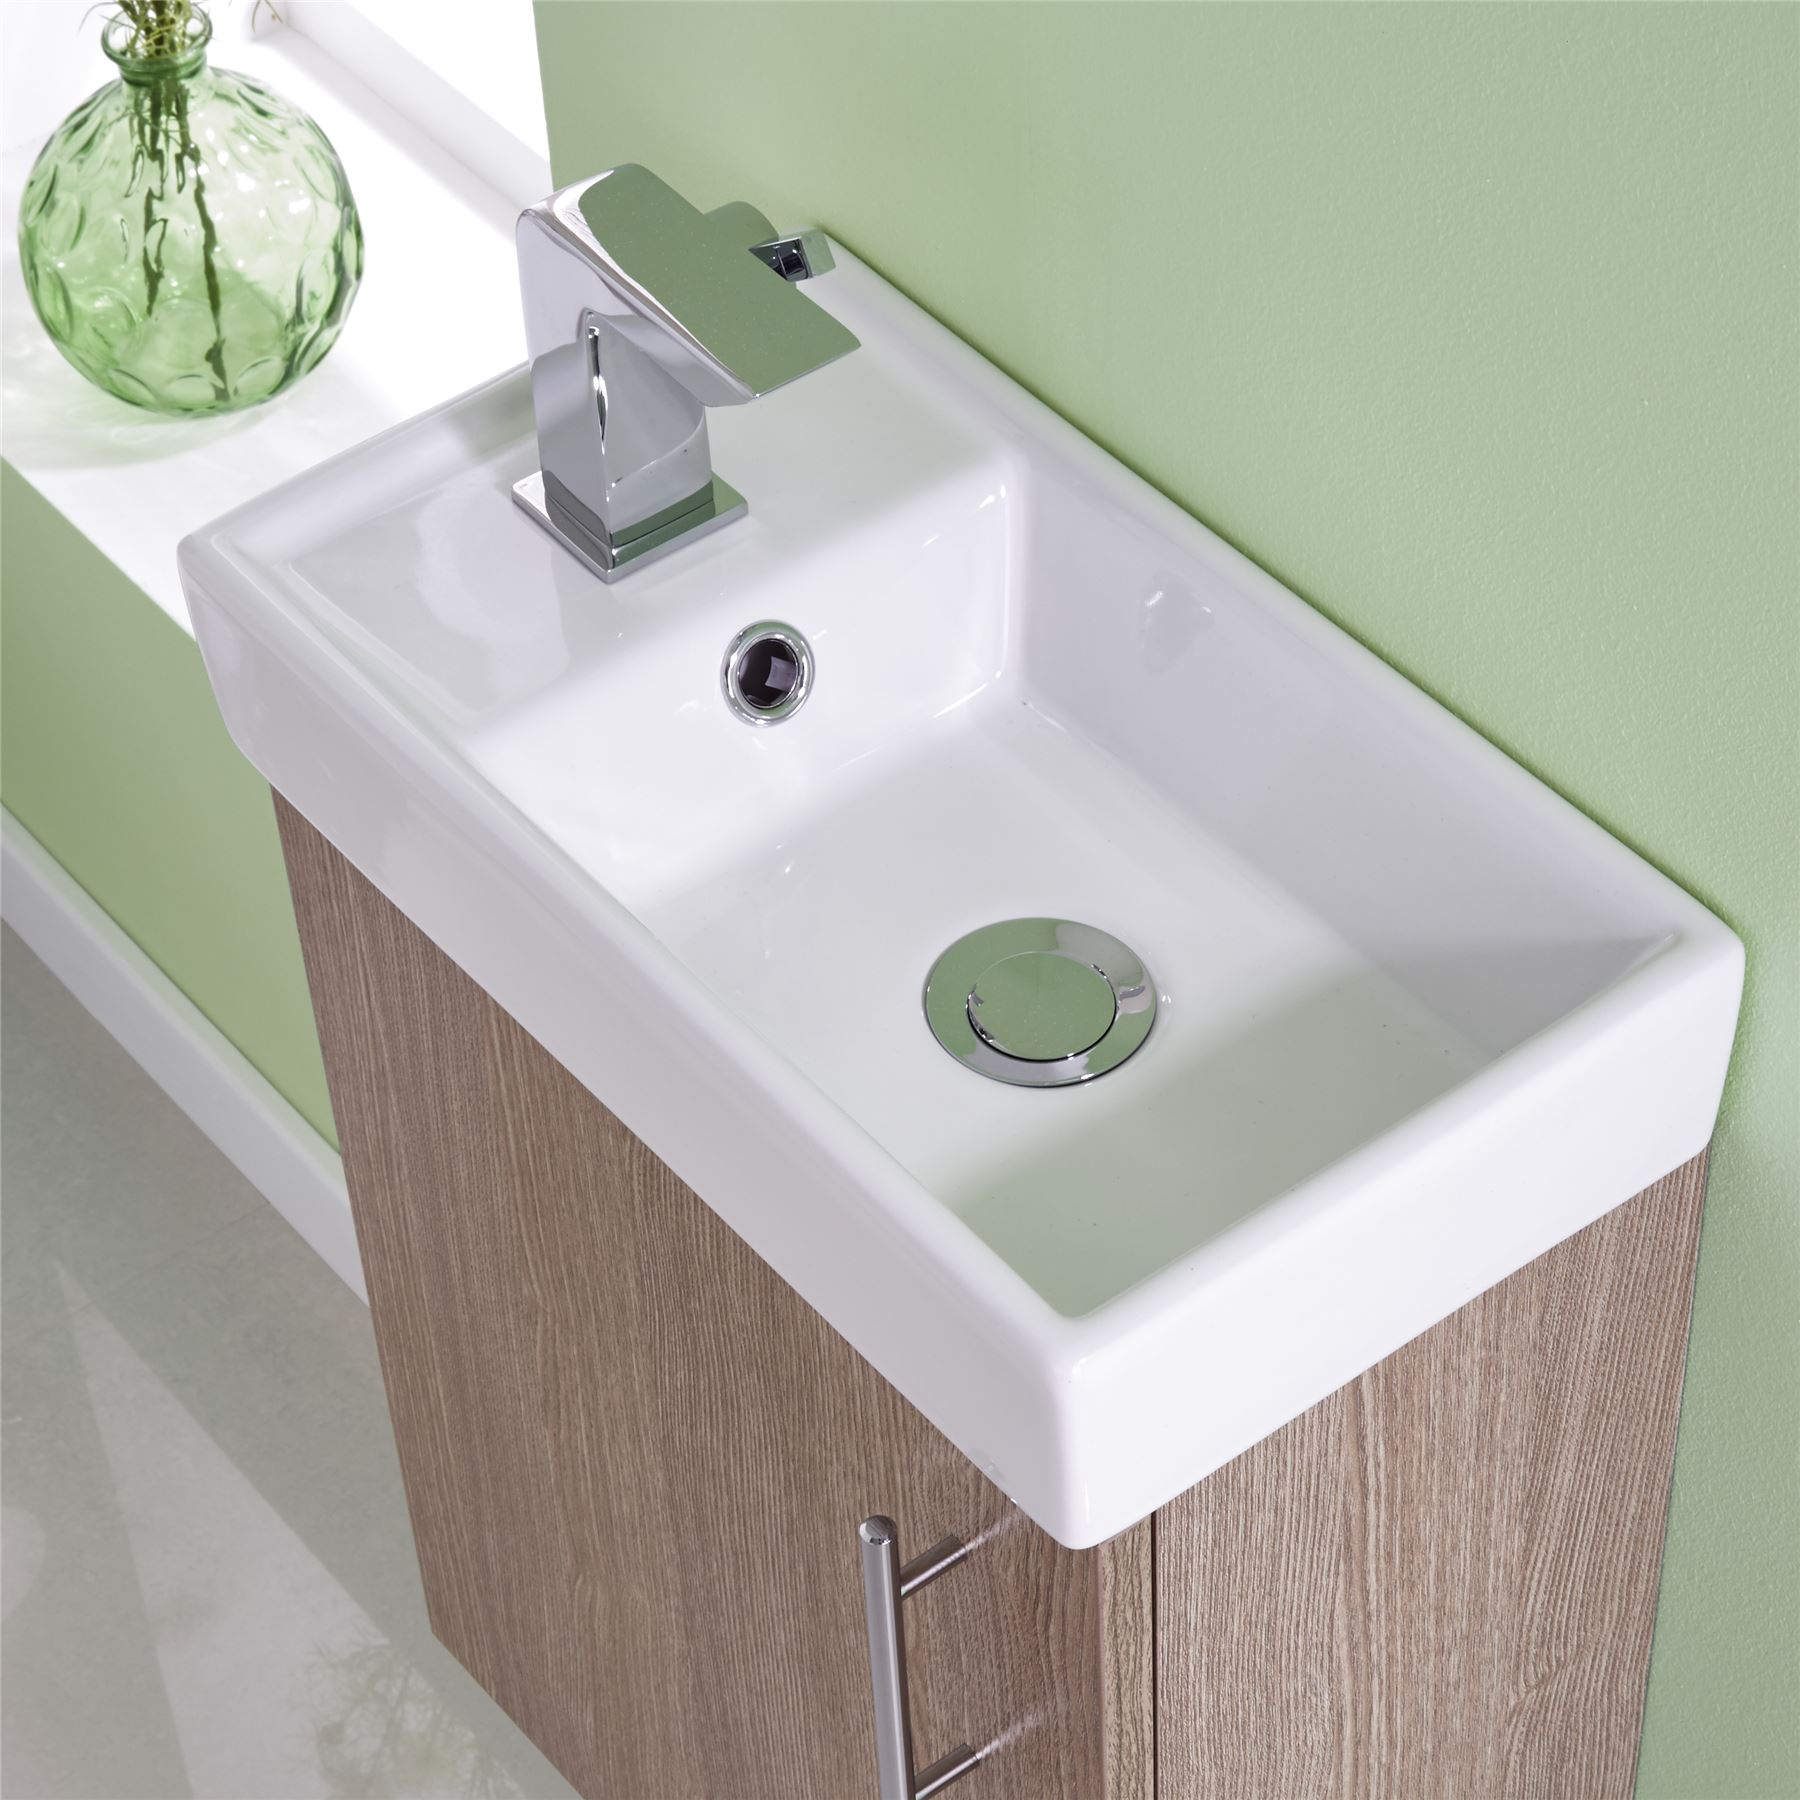 White small compact basin vanity unit bathroom cloakroom furniture 400 - 400mm Modern Bathroom Cloakroom Vanity Unit Amp Basin Sink